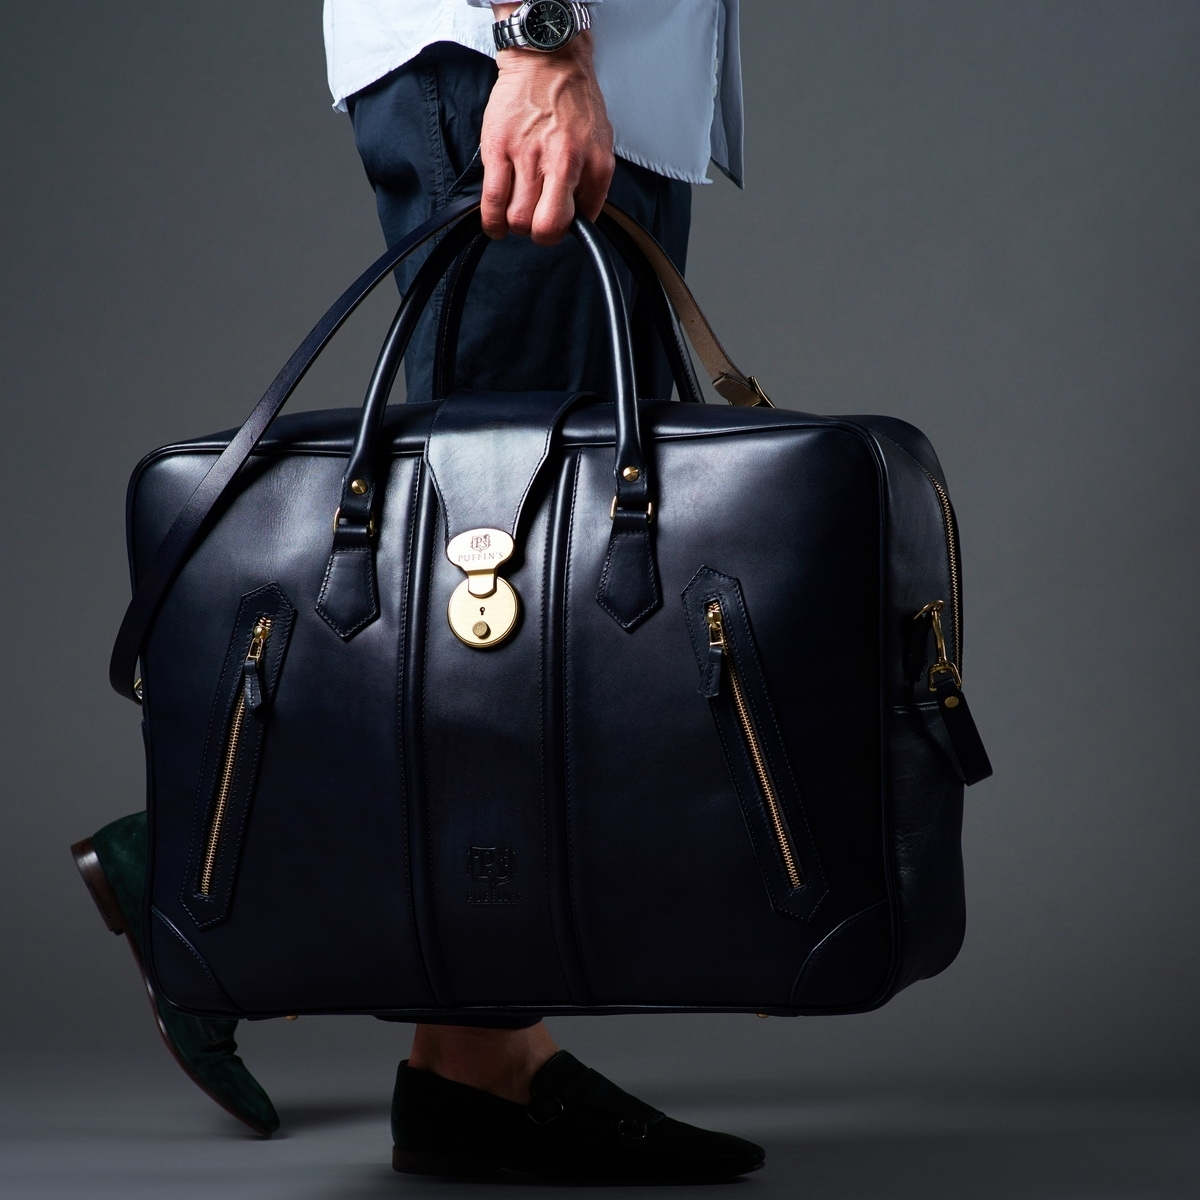 Leather suitcase HOLIDAY midnight blue